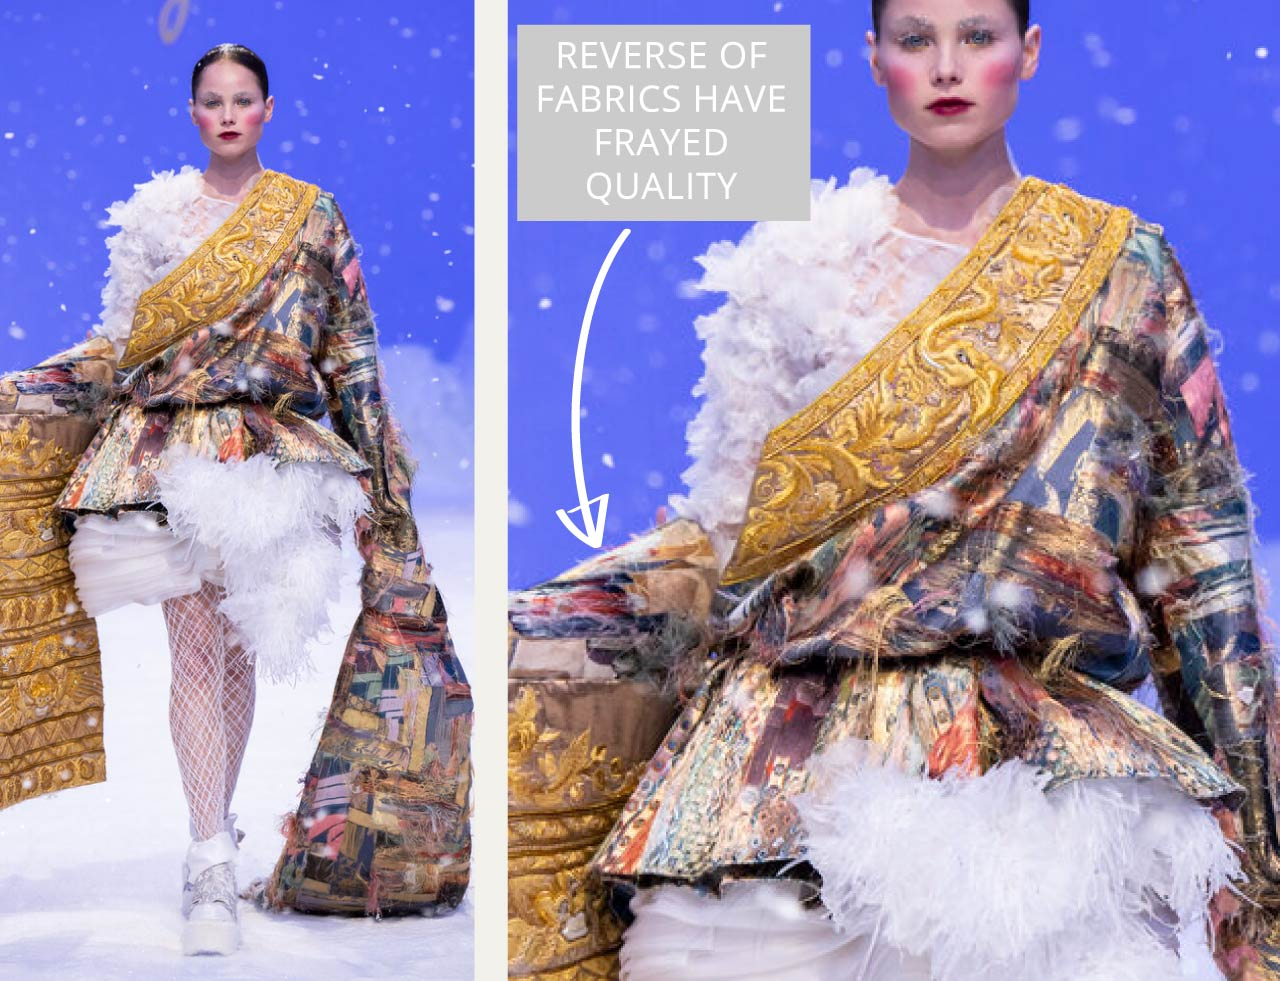 Reverse Textiles at Guo Pei Haute Couture | The Cutting Class. By using the reverse of the brocade fabric with the visible weft yarn 'floats' the fabrics appear softly frayed.